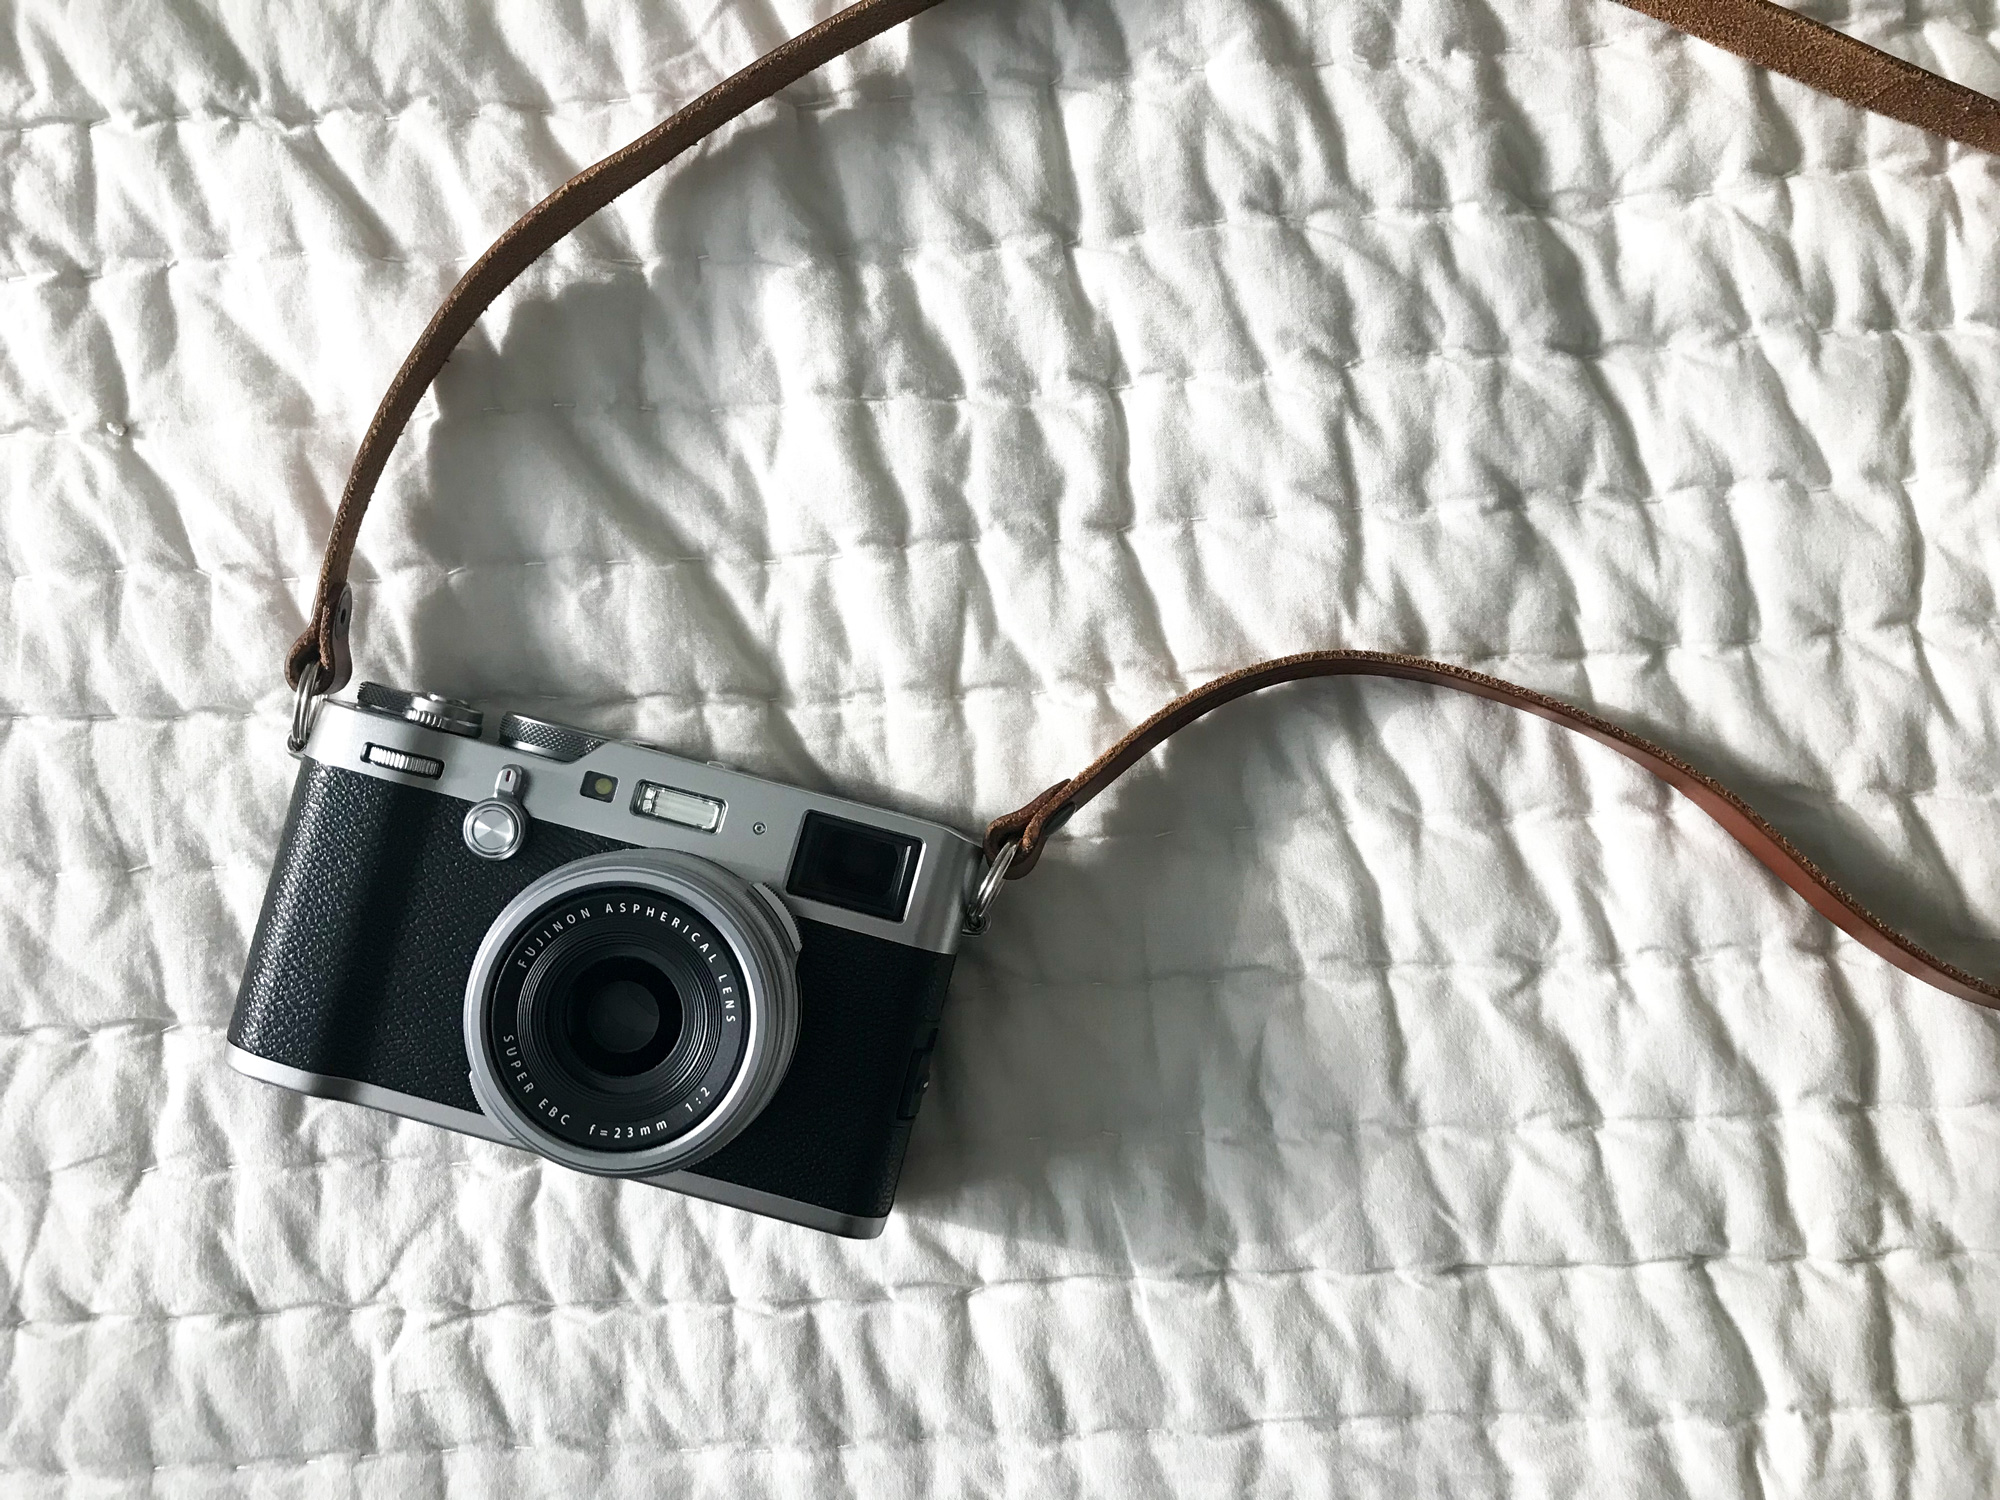 Fuji X100F - my new camera that I've been shooting with since my trip to London 2018. Finally, a light, good quality camera that I can carry around instead of my clunky 2006 Canon XTi DSLR. I've had dreams that I'm taking photos with an intense atmosphere that becomes other worldly and I'm sure this camera made my dreams come true. It captures light so magically that it takes me back to the magic that was flickr.